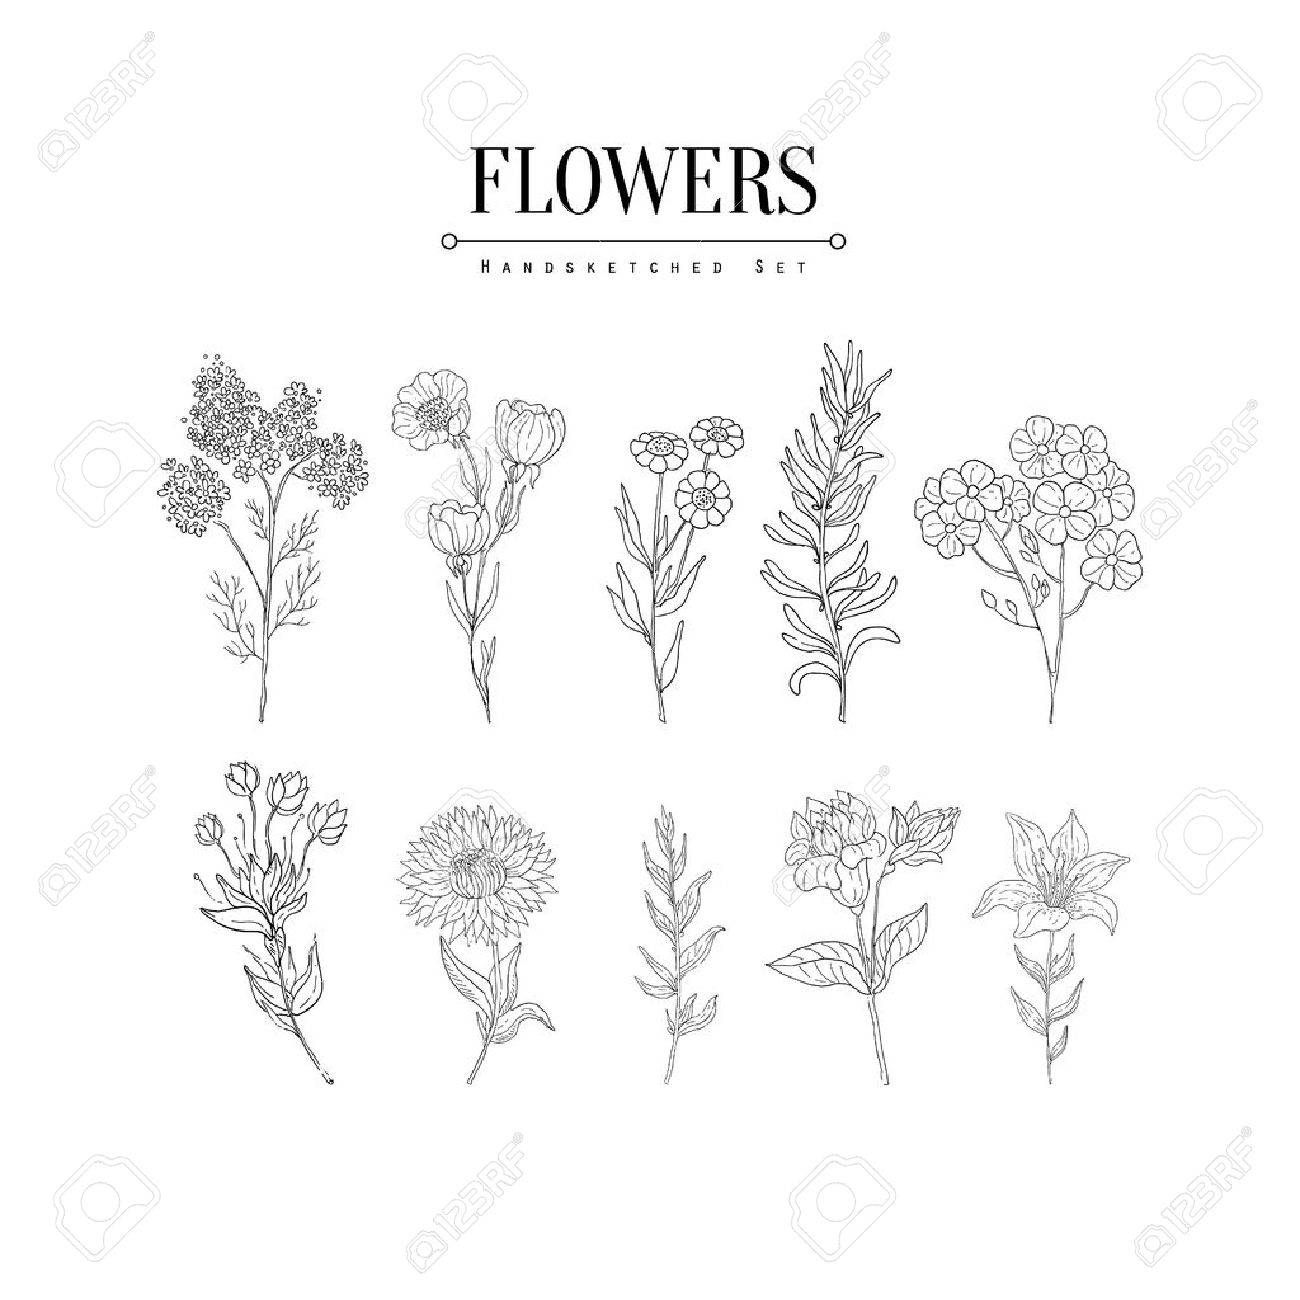 Flower Herbarium Hand Drawn Realistic Detailed Sketch In Classy Royalty Free Cliparts Vectors And Stock Illustration Image 60614138